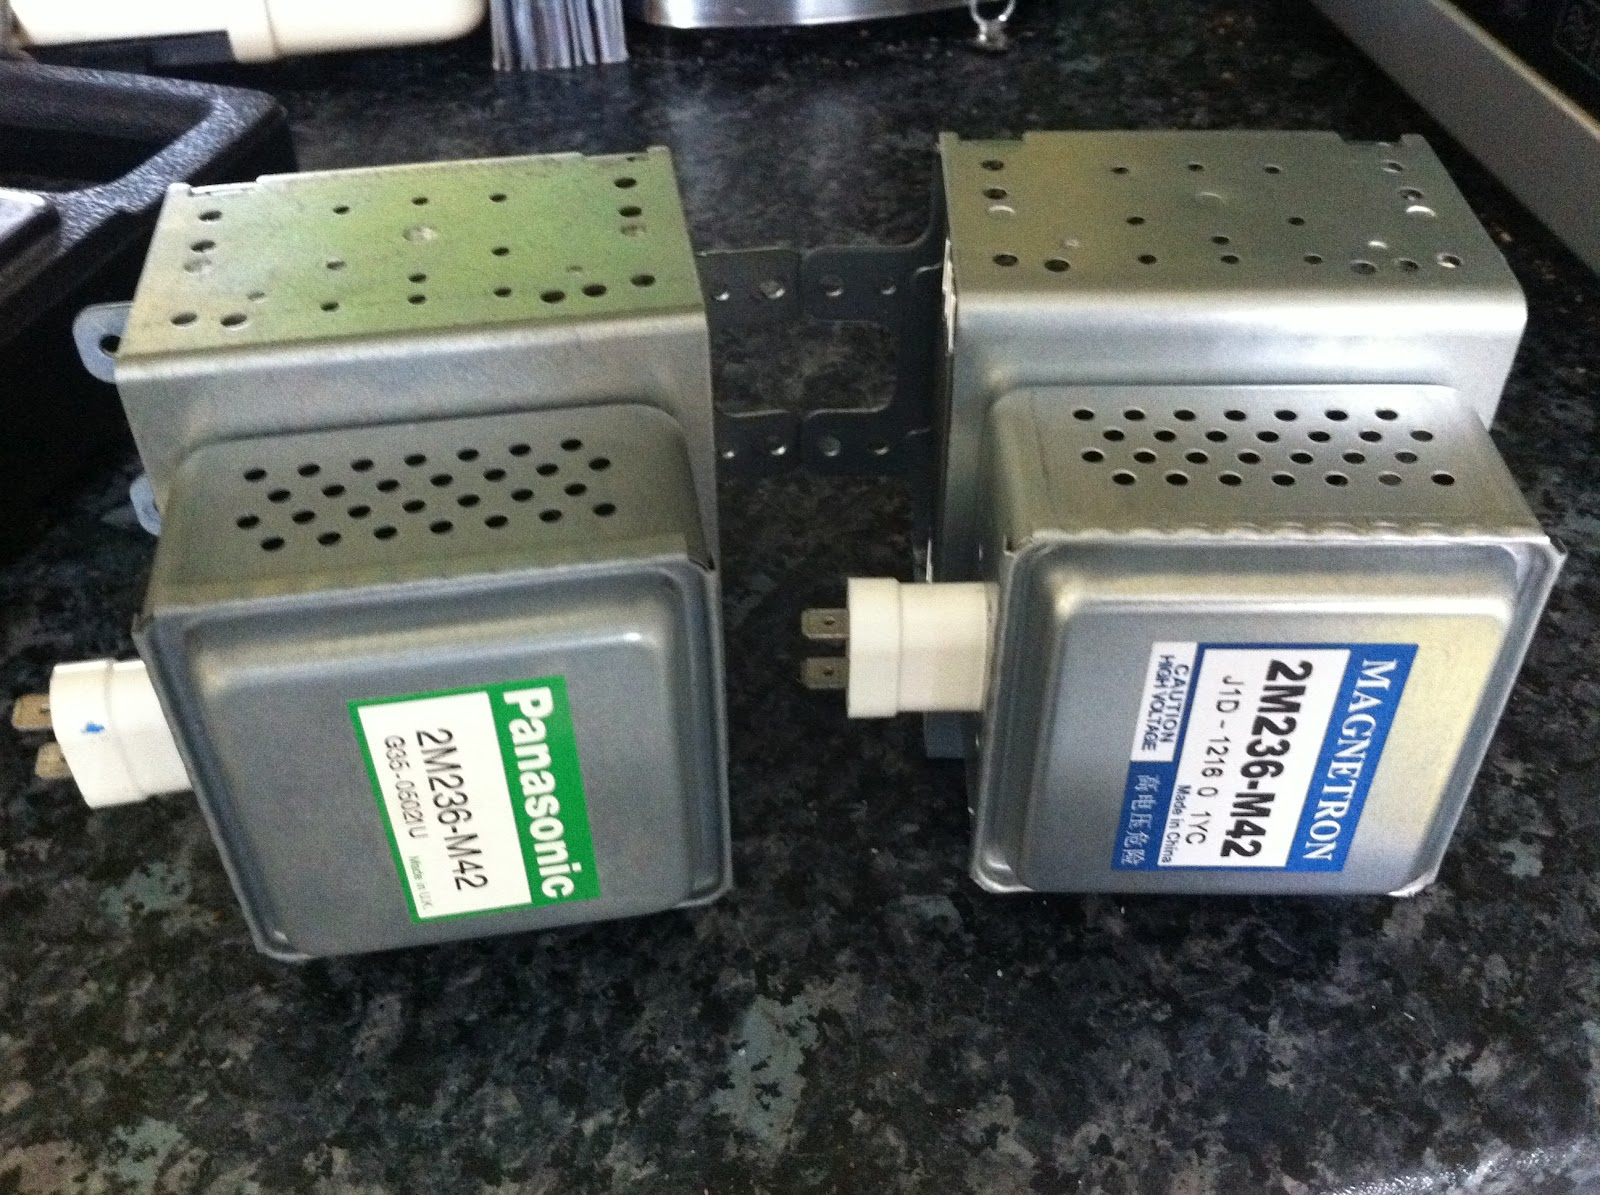 The Repair Blog Pansaonic Inverter Microwave Cuts Out Stops Resets 2m236 M42 Nn A713a